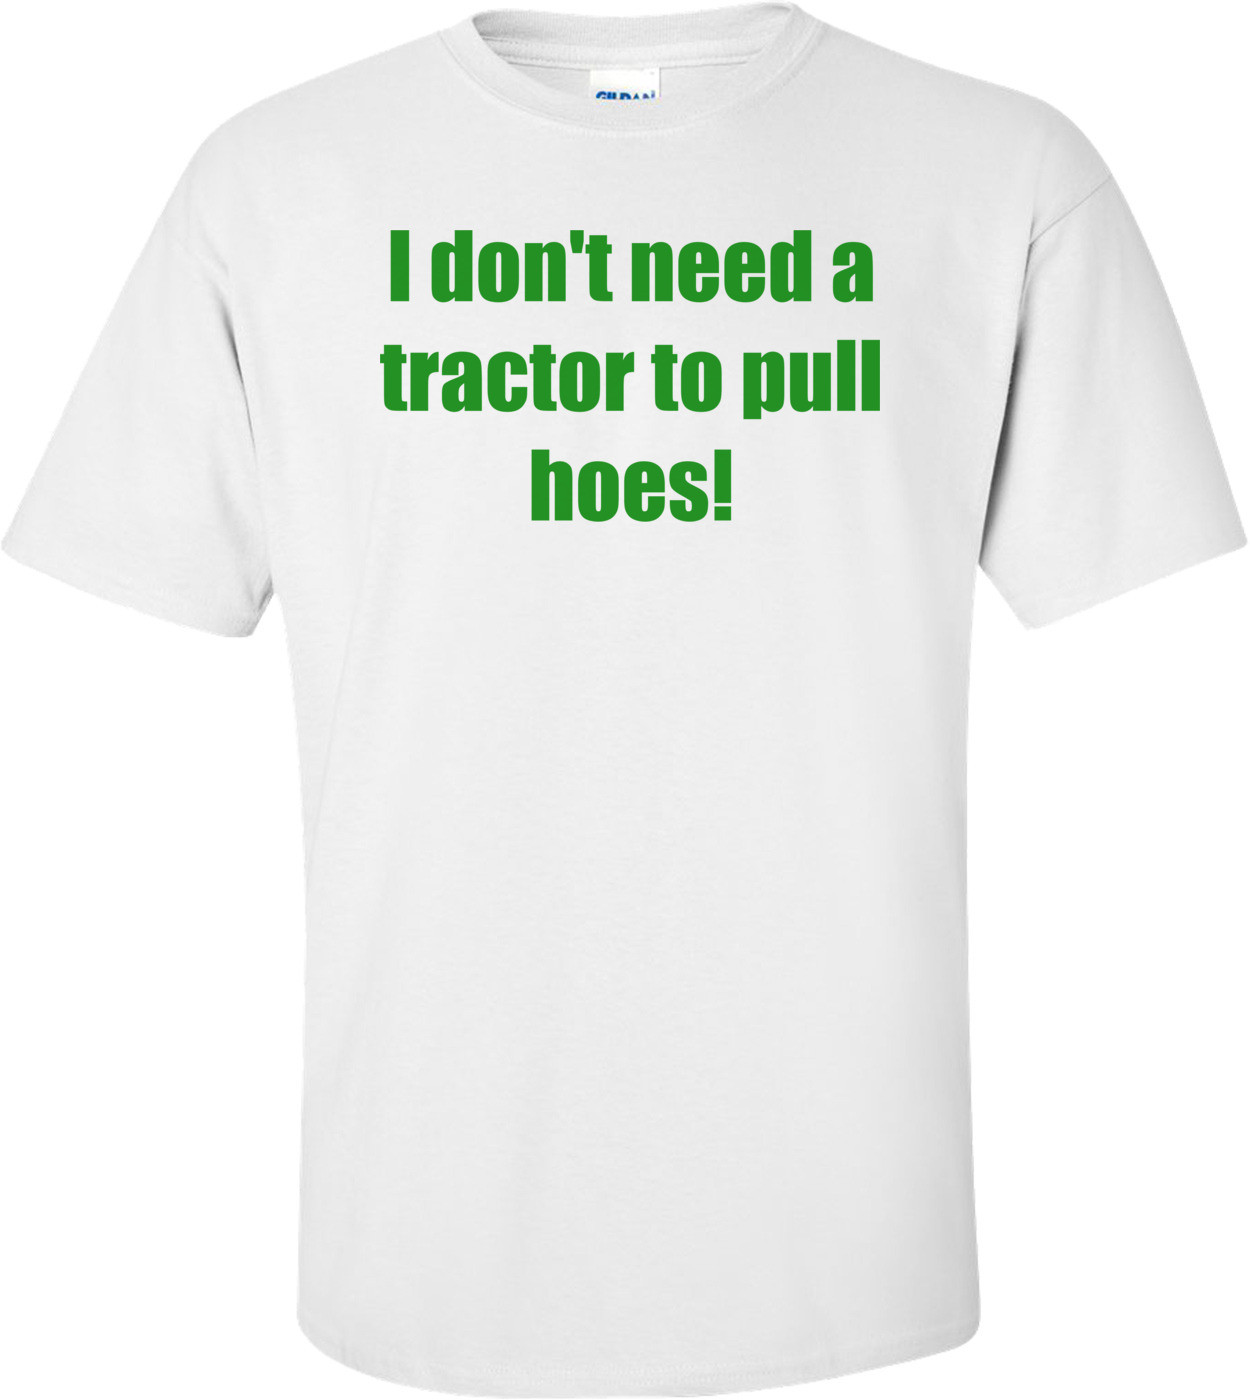 I don't need a tractor to pull hoes! Shirt